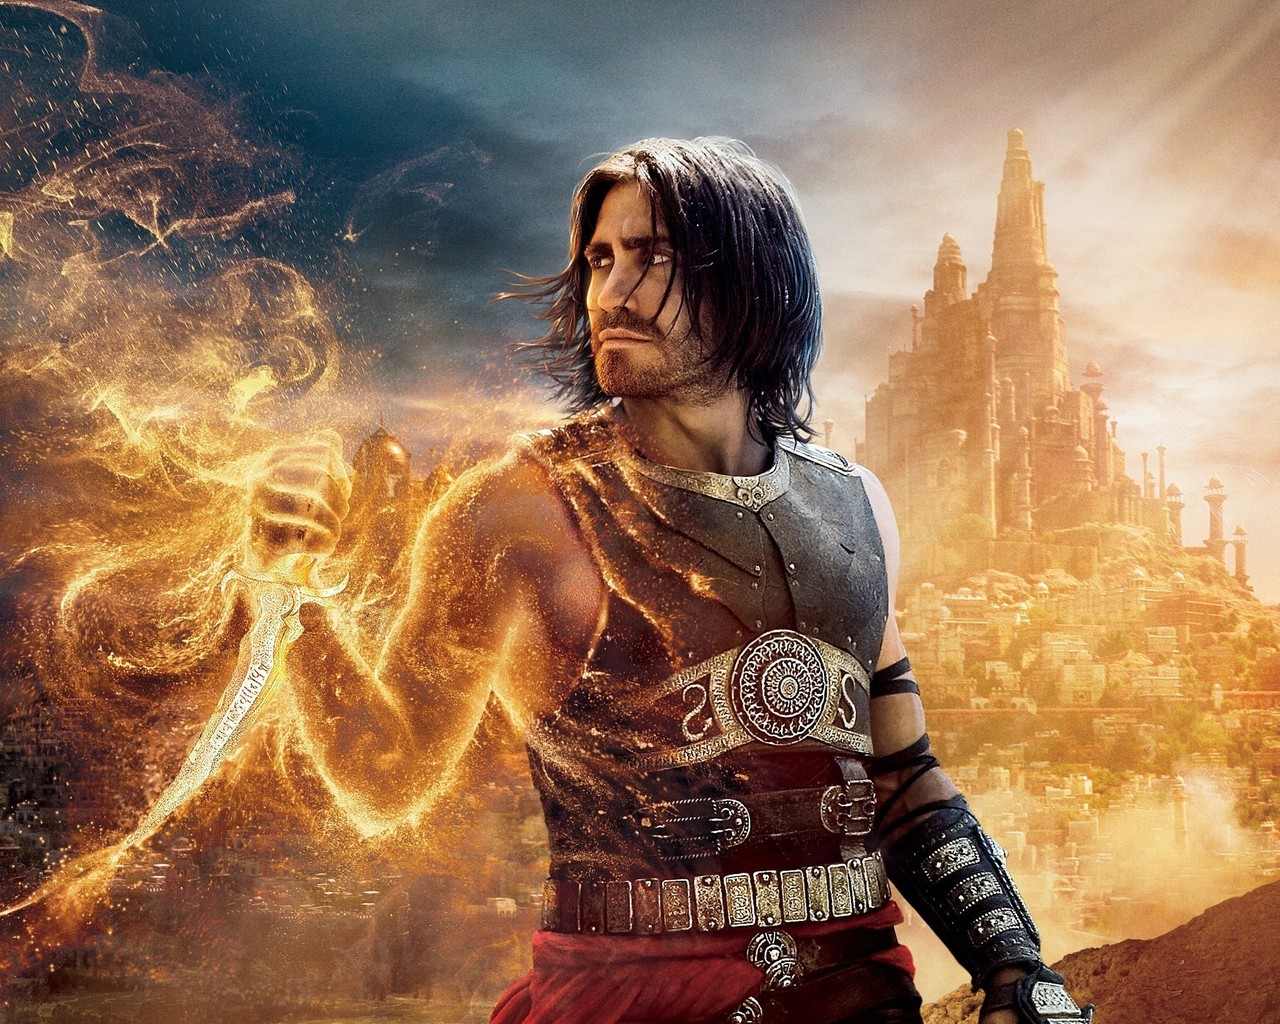 12213 download wallpaper Cinema, Games, Actors, Men, Prince Of Persia, Jake Gyllenhaal screensavers and pictures for free